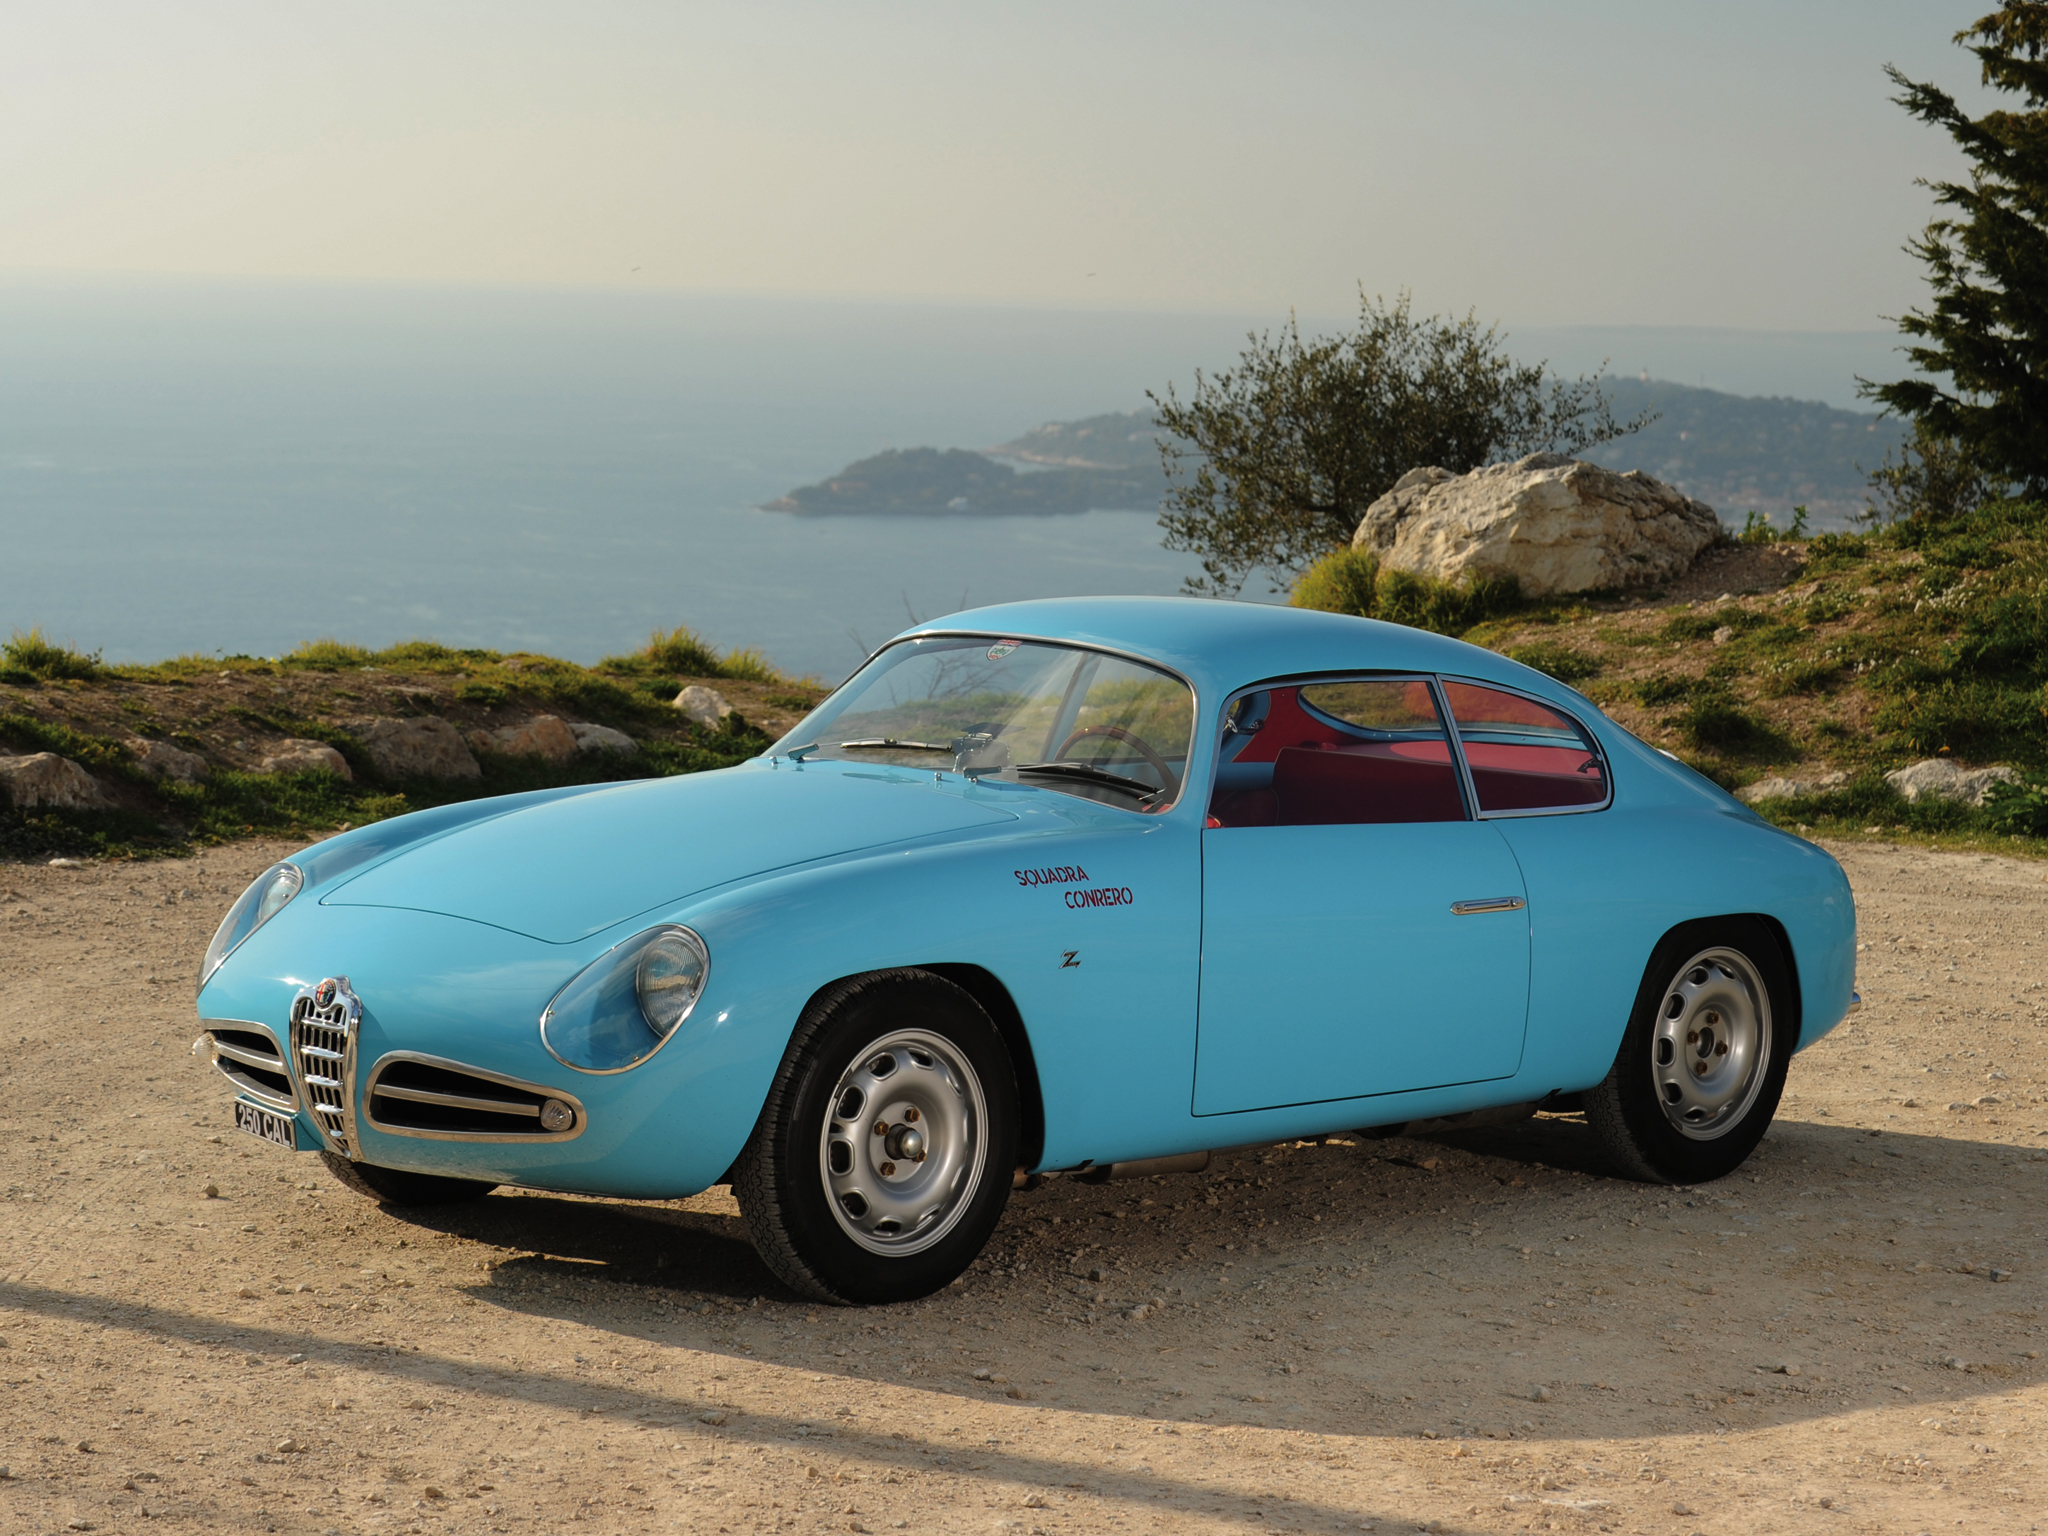 Alfa romeo svz photo - 3